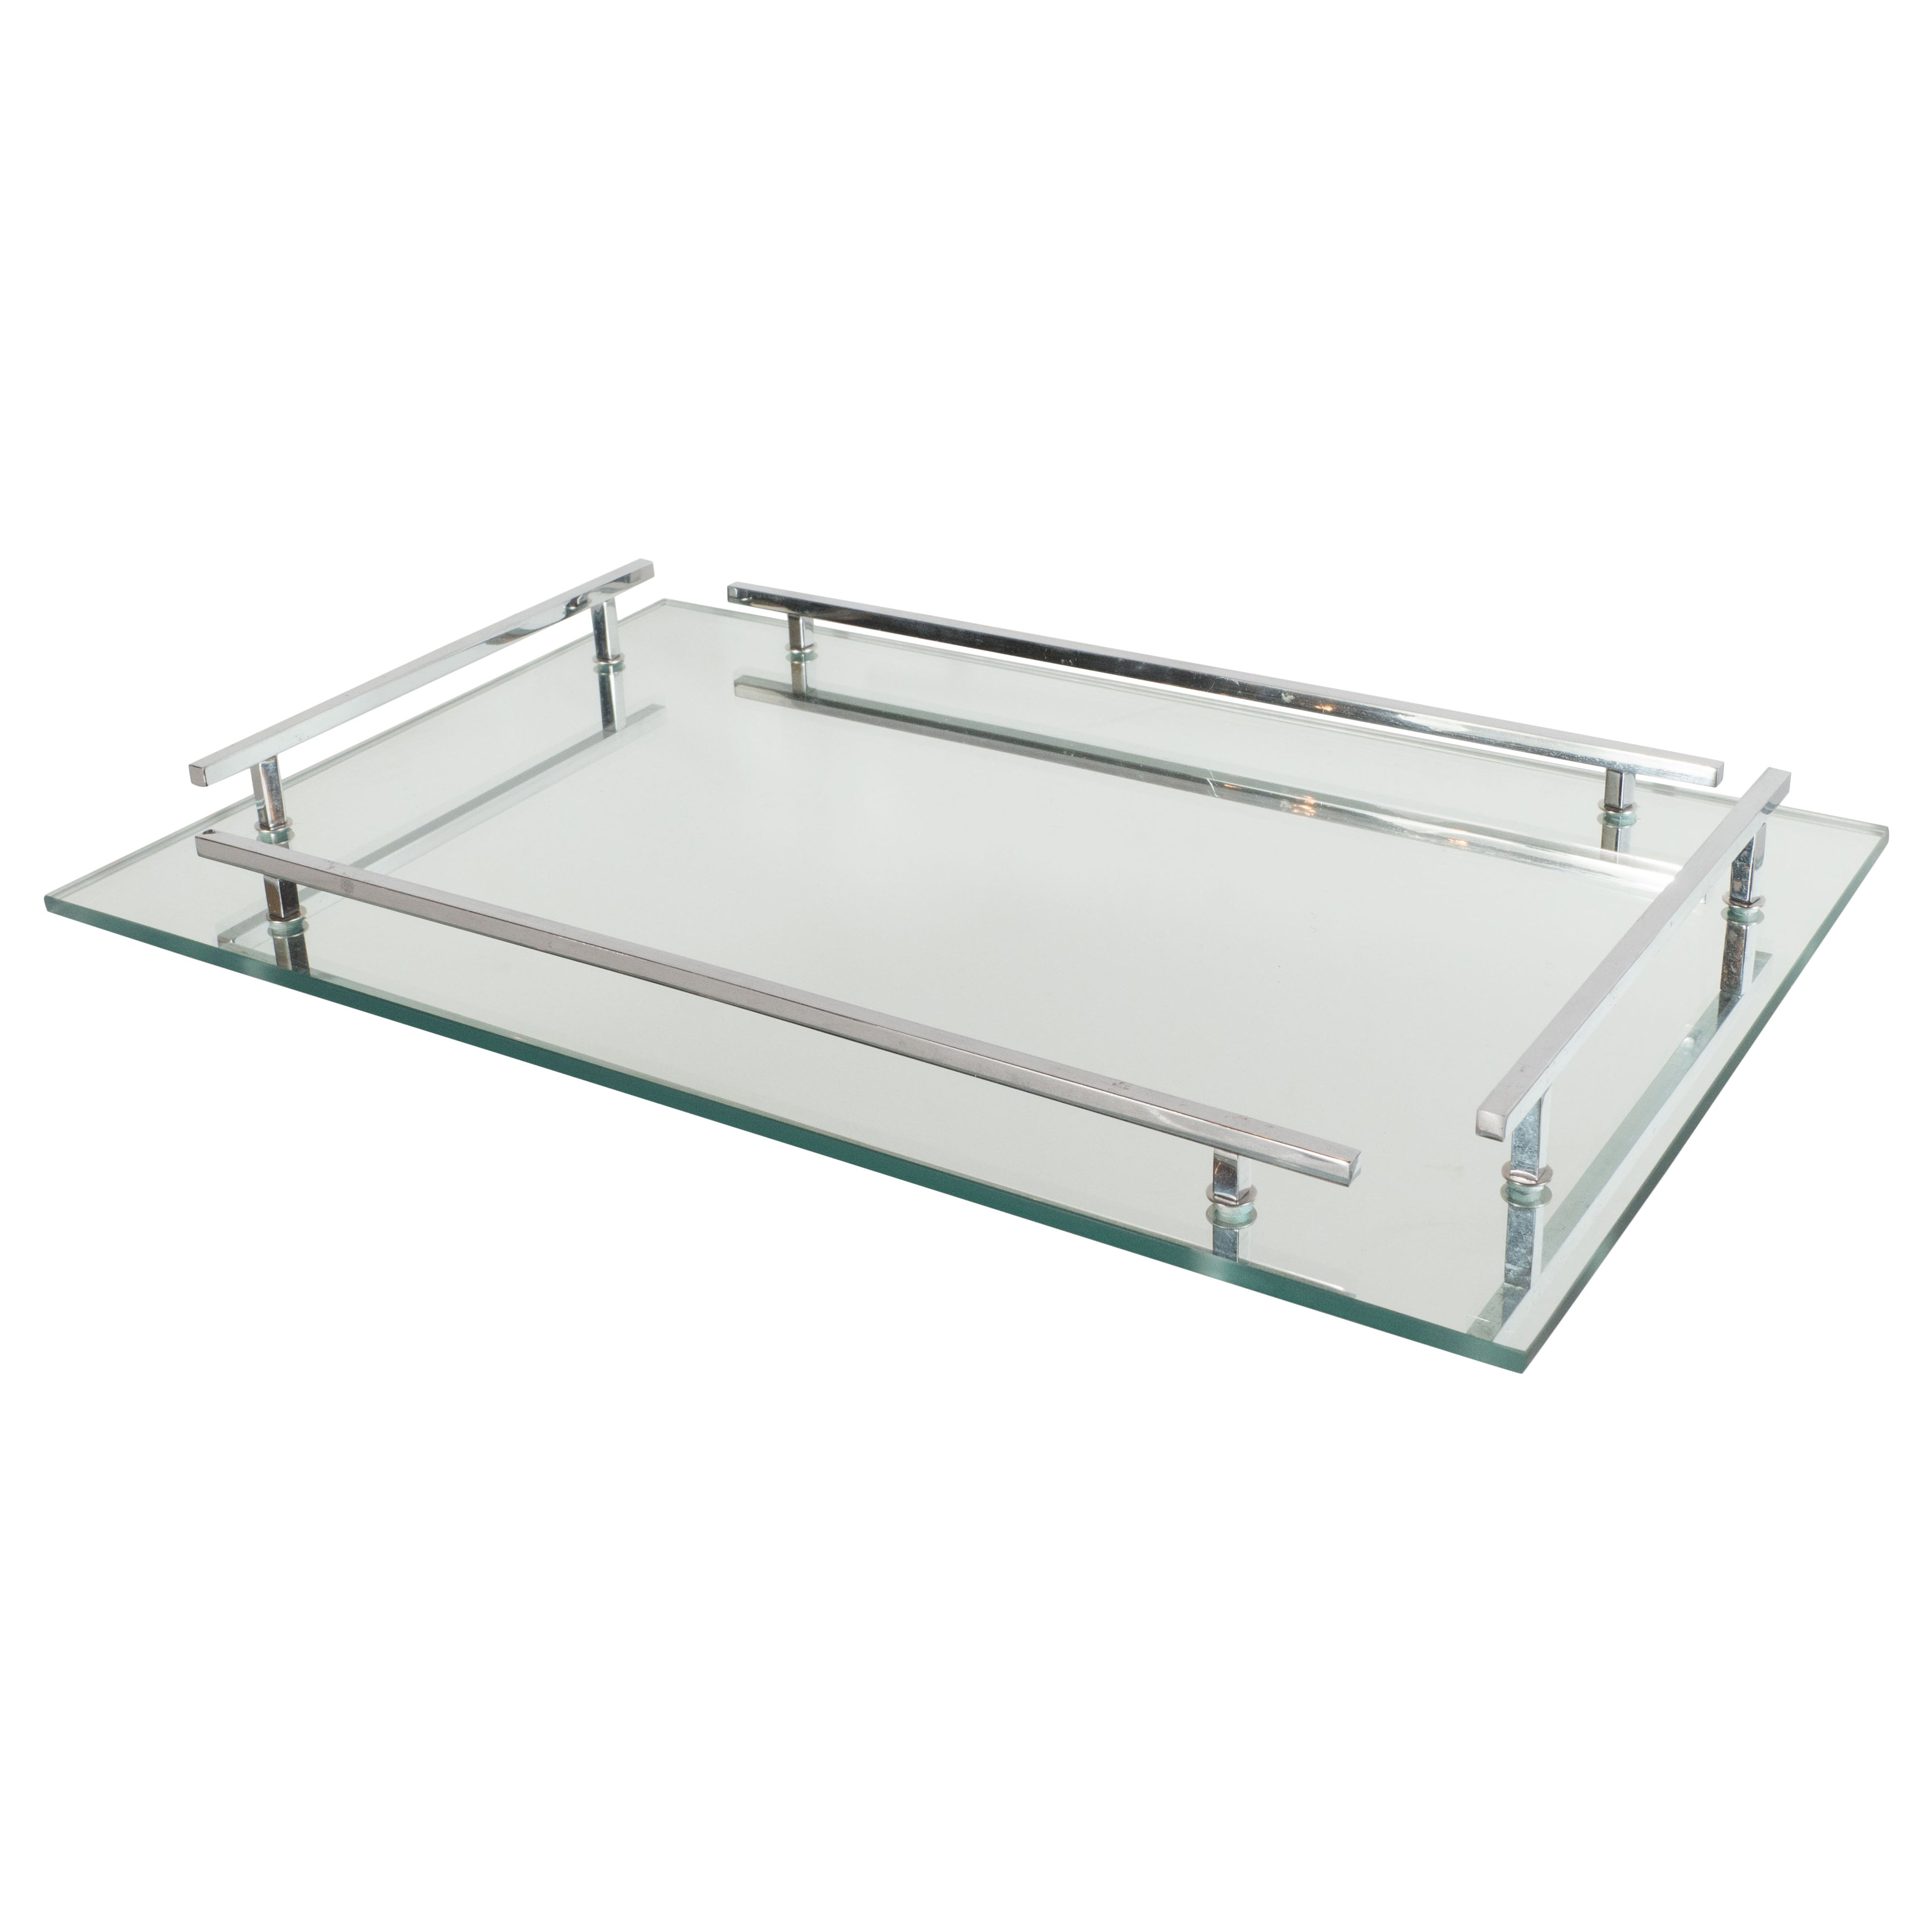 Objet Deco Chrome French Art Deco Mirrored Tray With Rectangular Polished Chrome Handles